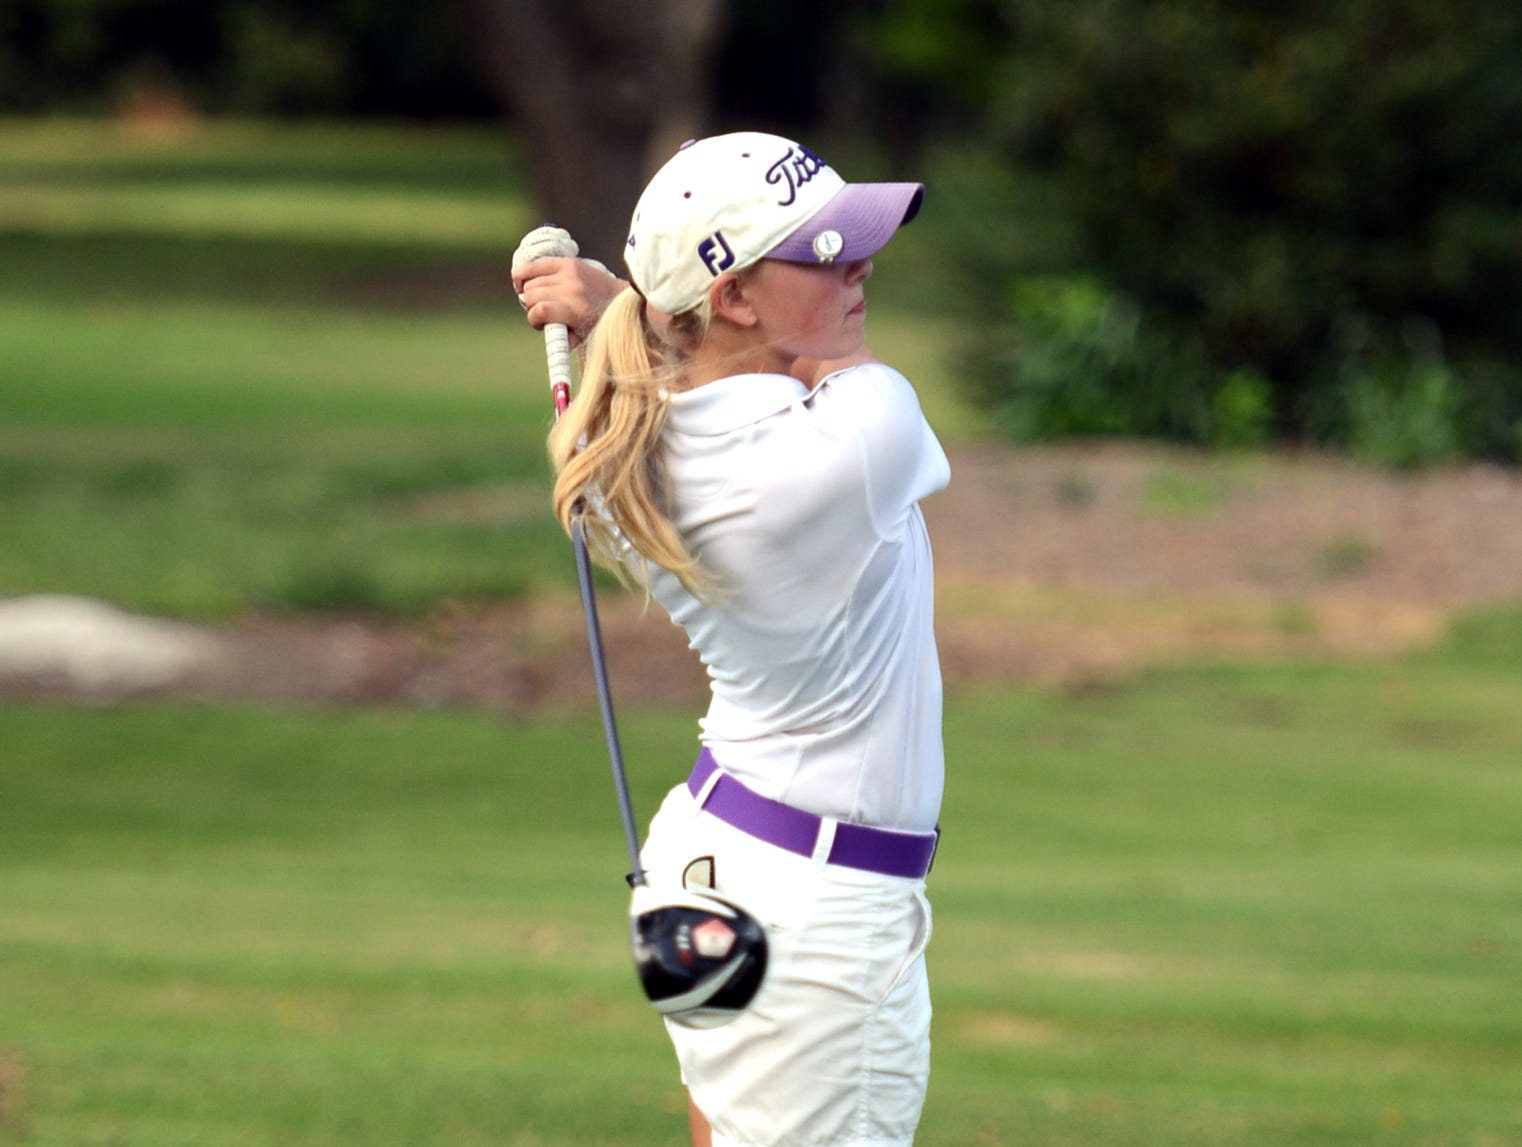 Milan High School's Arianna Clemmer shot a 75 Monday to lead all girls at the FCA Invitational.